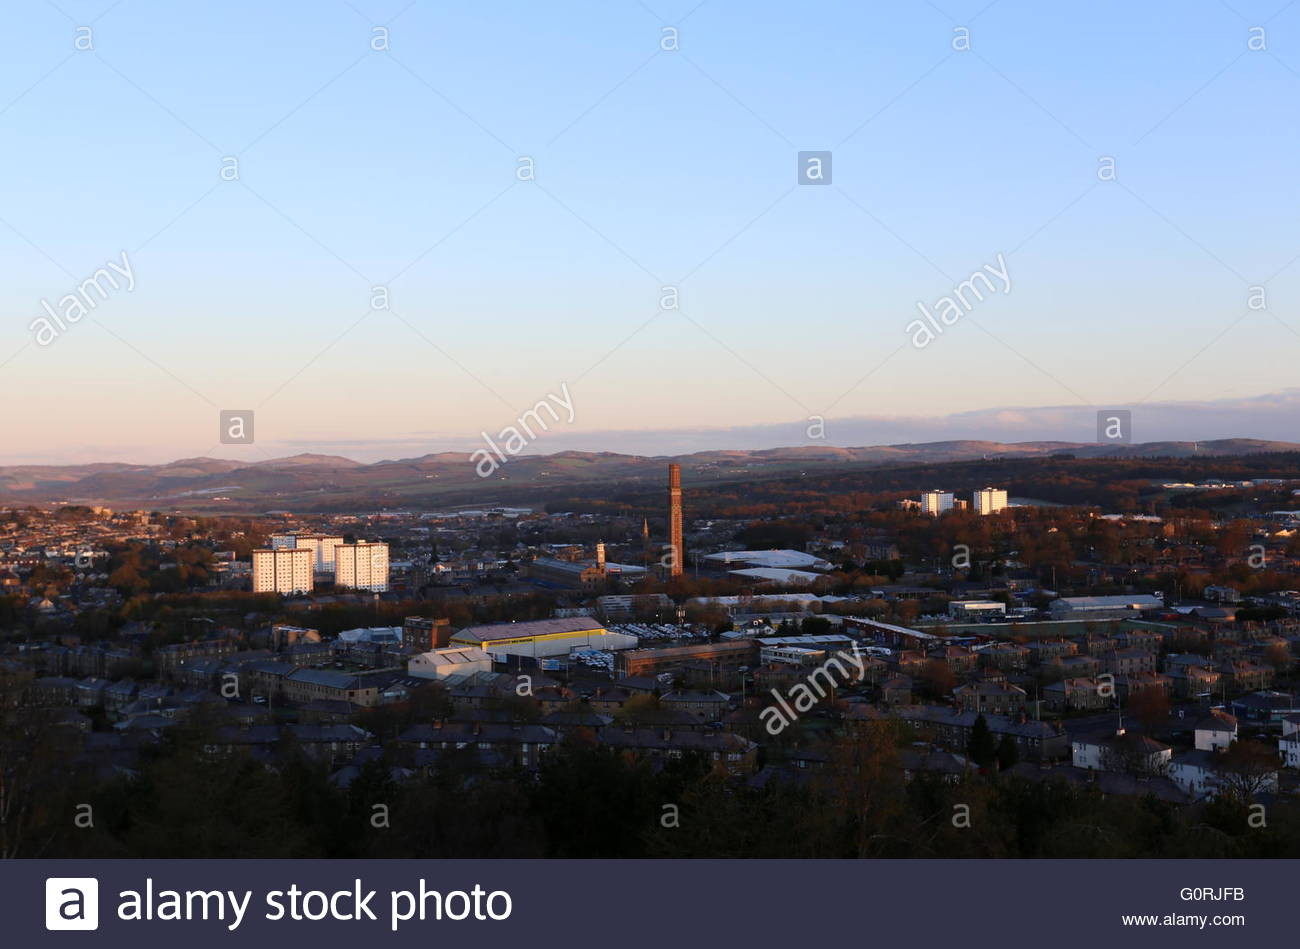 Elevated view of Lochee and Cox's Stack chimney Dundee at dawn Scotland  April 2016 - Stock Image